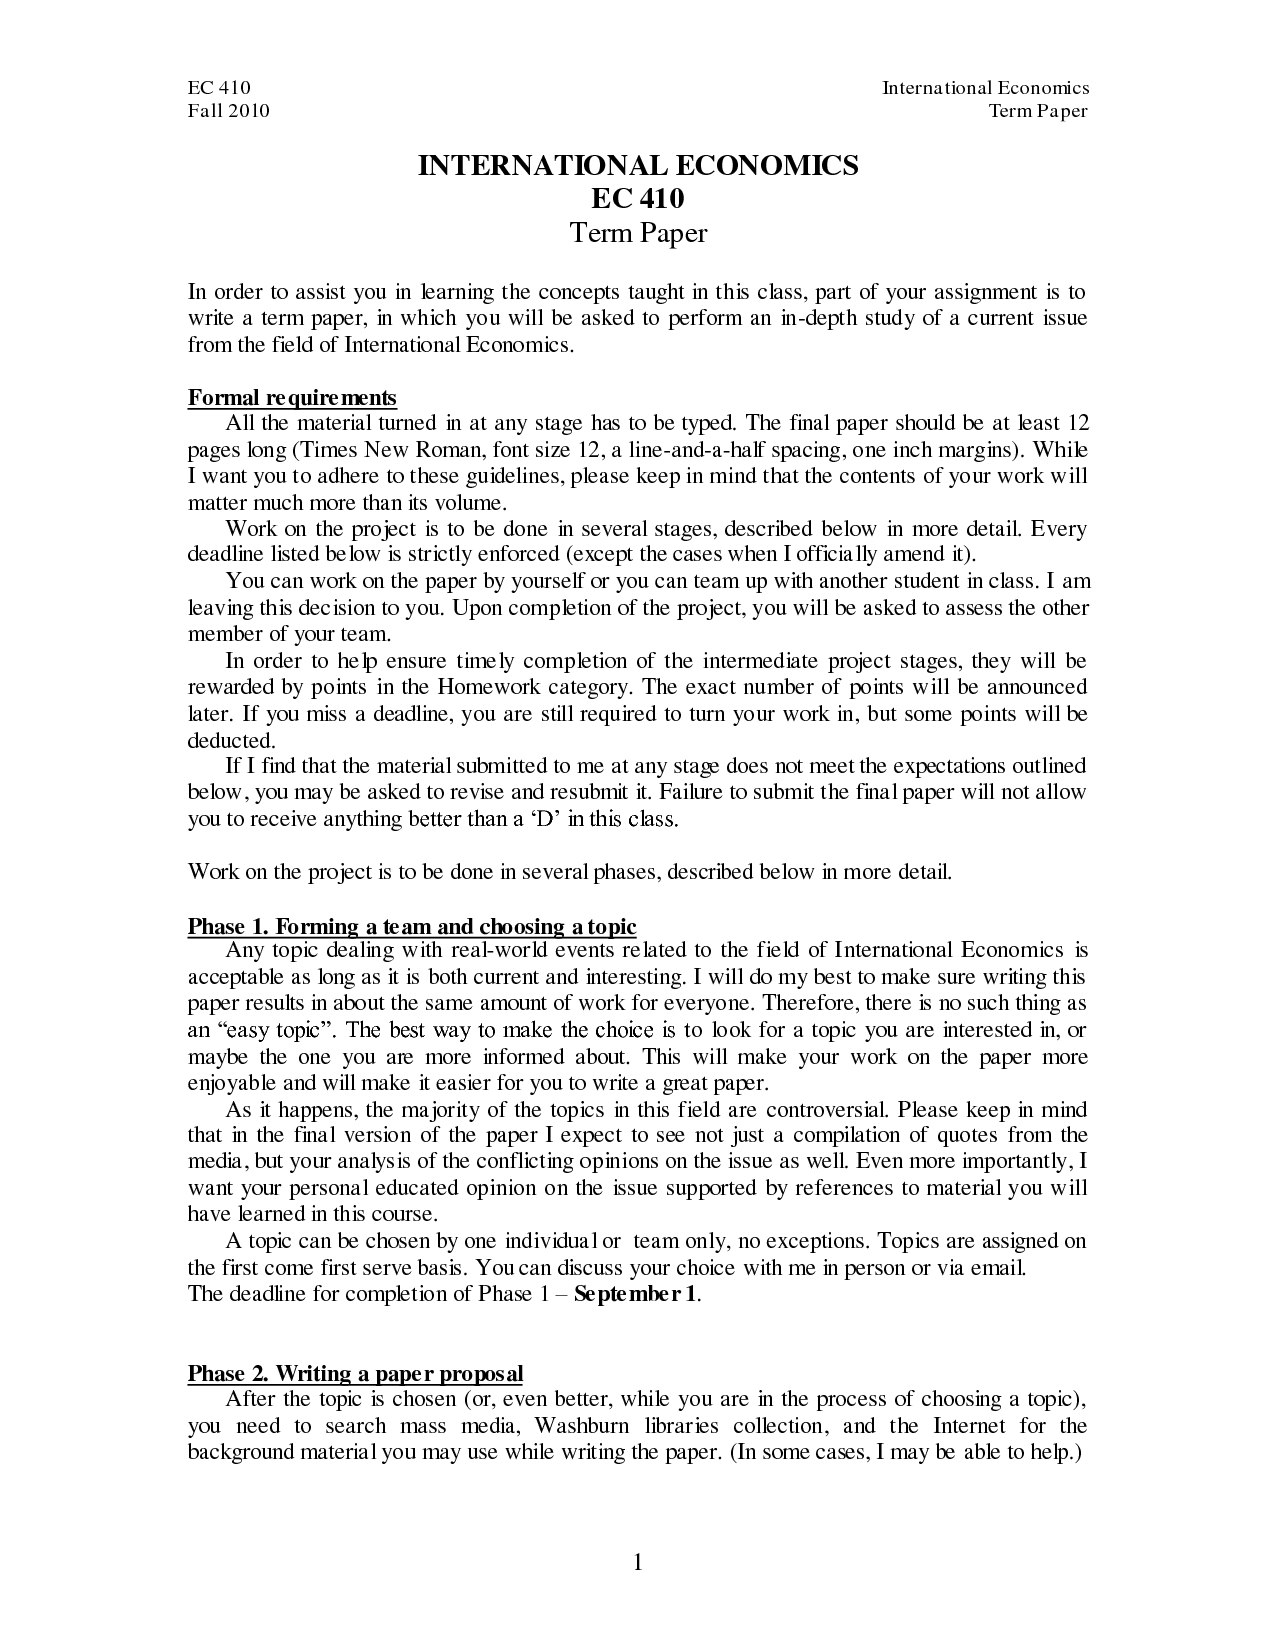 term paper writing guidelines